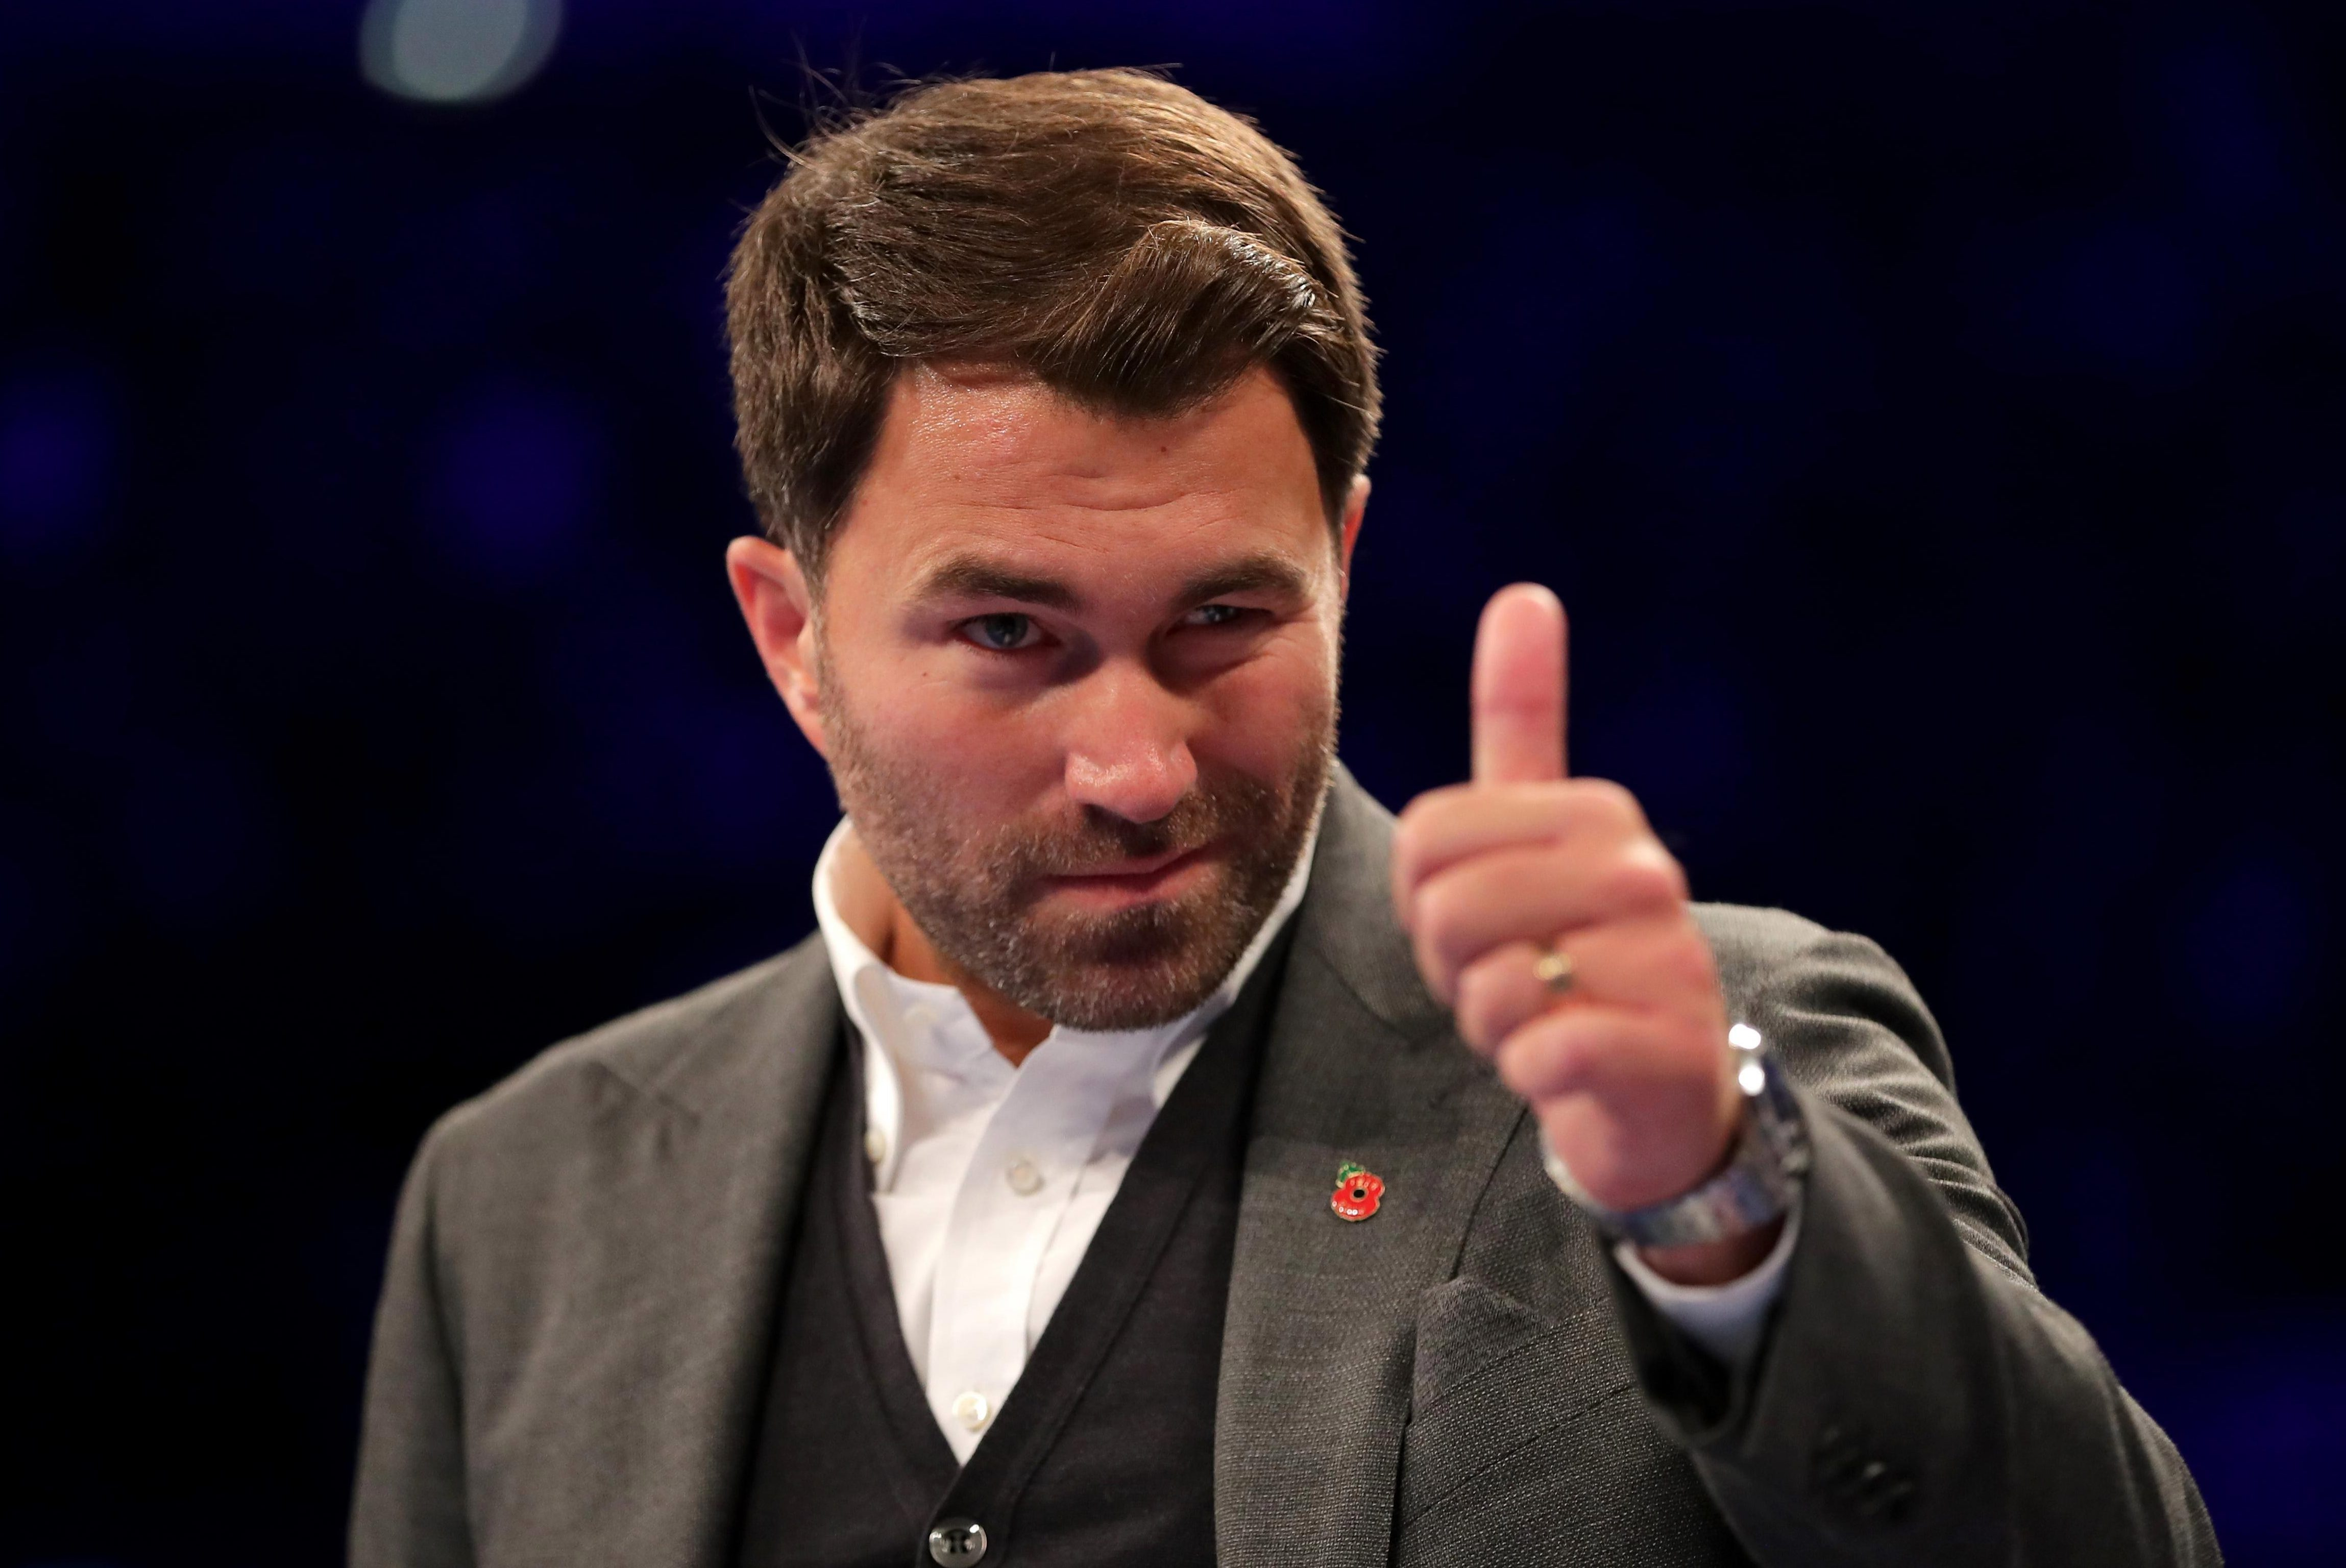 Eddie Hearn has both Usyk and AJ signed up to a promotional contract